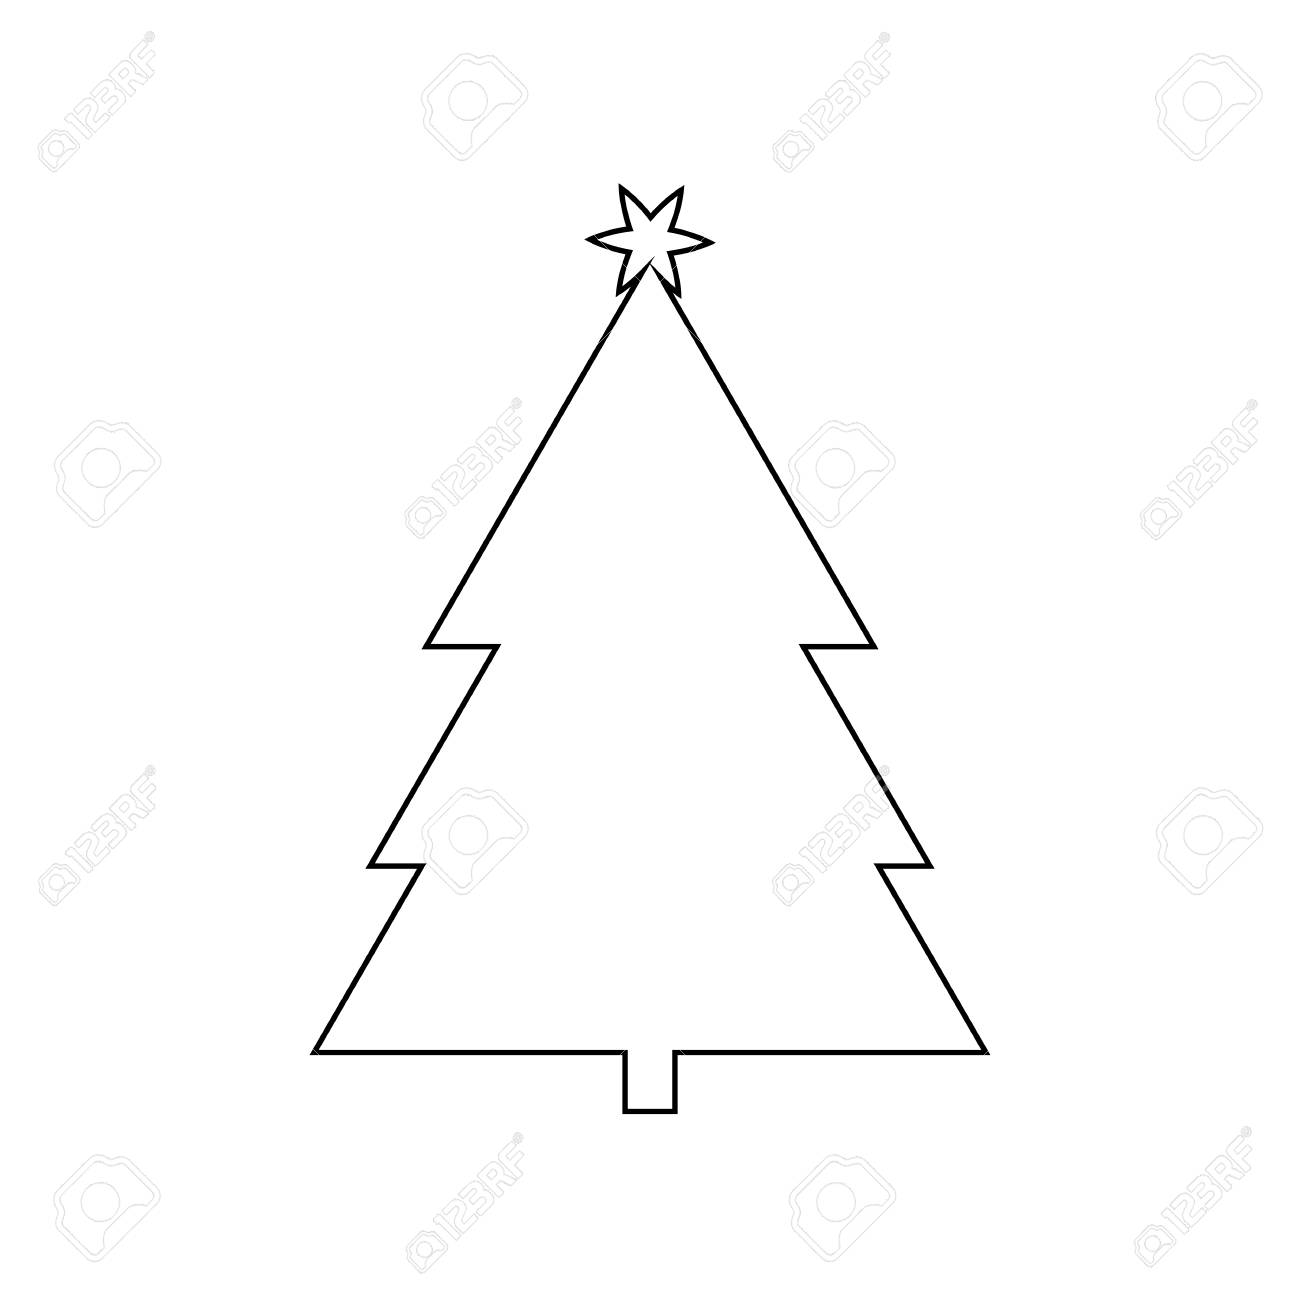 Christmas Tree Outline Icon Symbol Design Royalty Free Cliparts